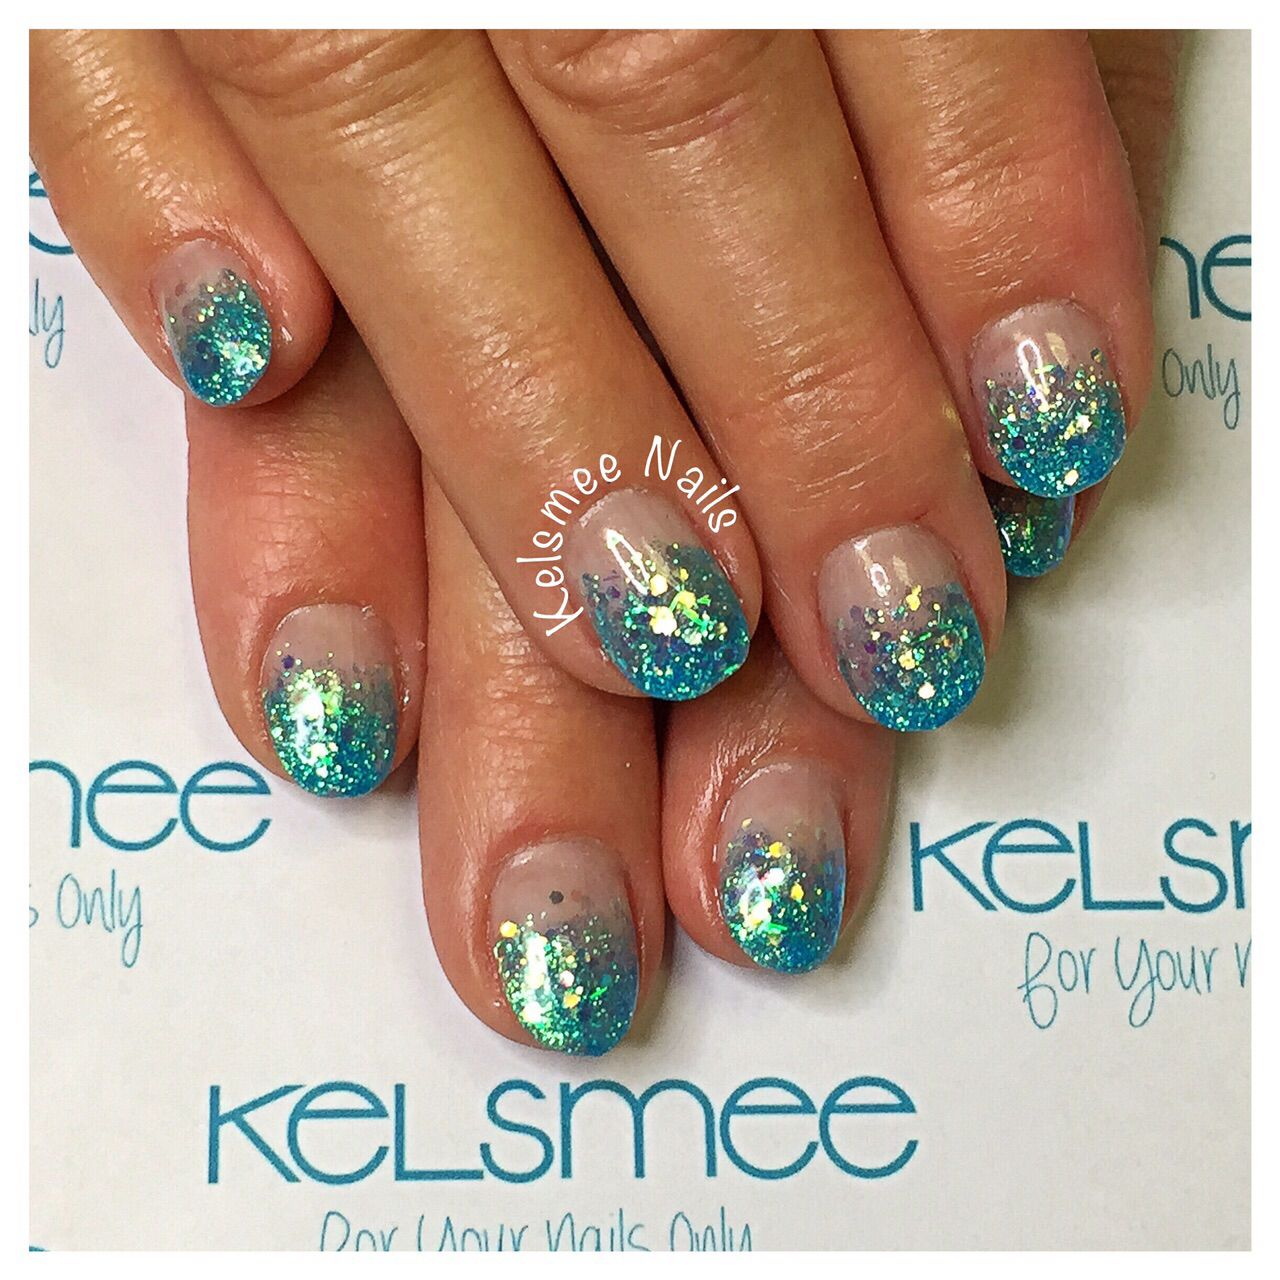 Youngnails glitterfade turquoise acrylic nails   Nails   Pinterest